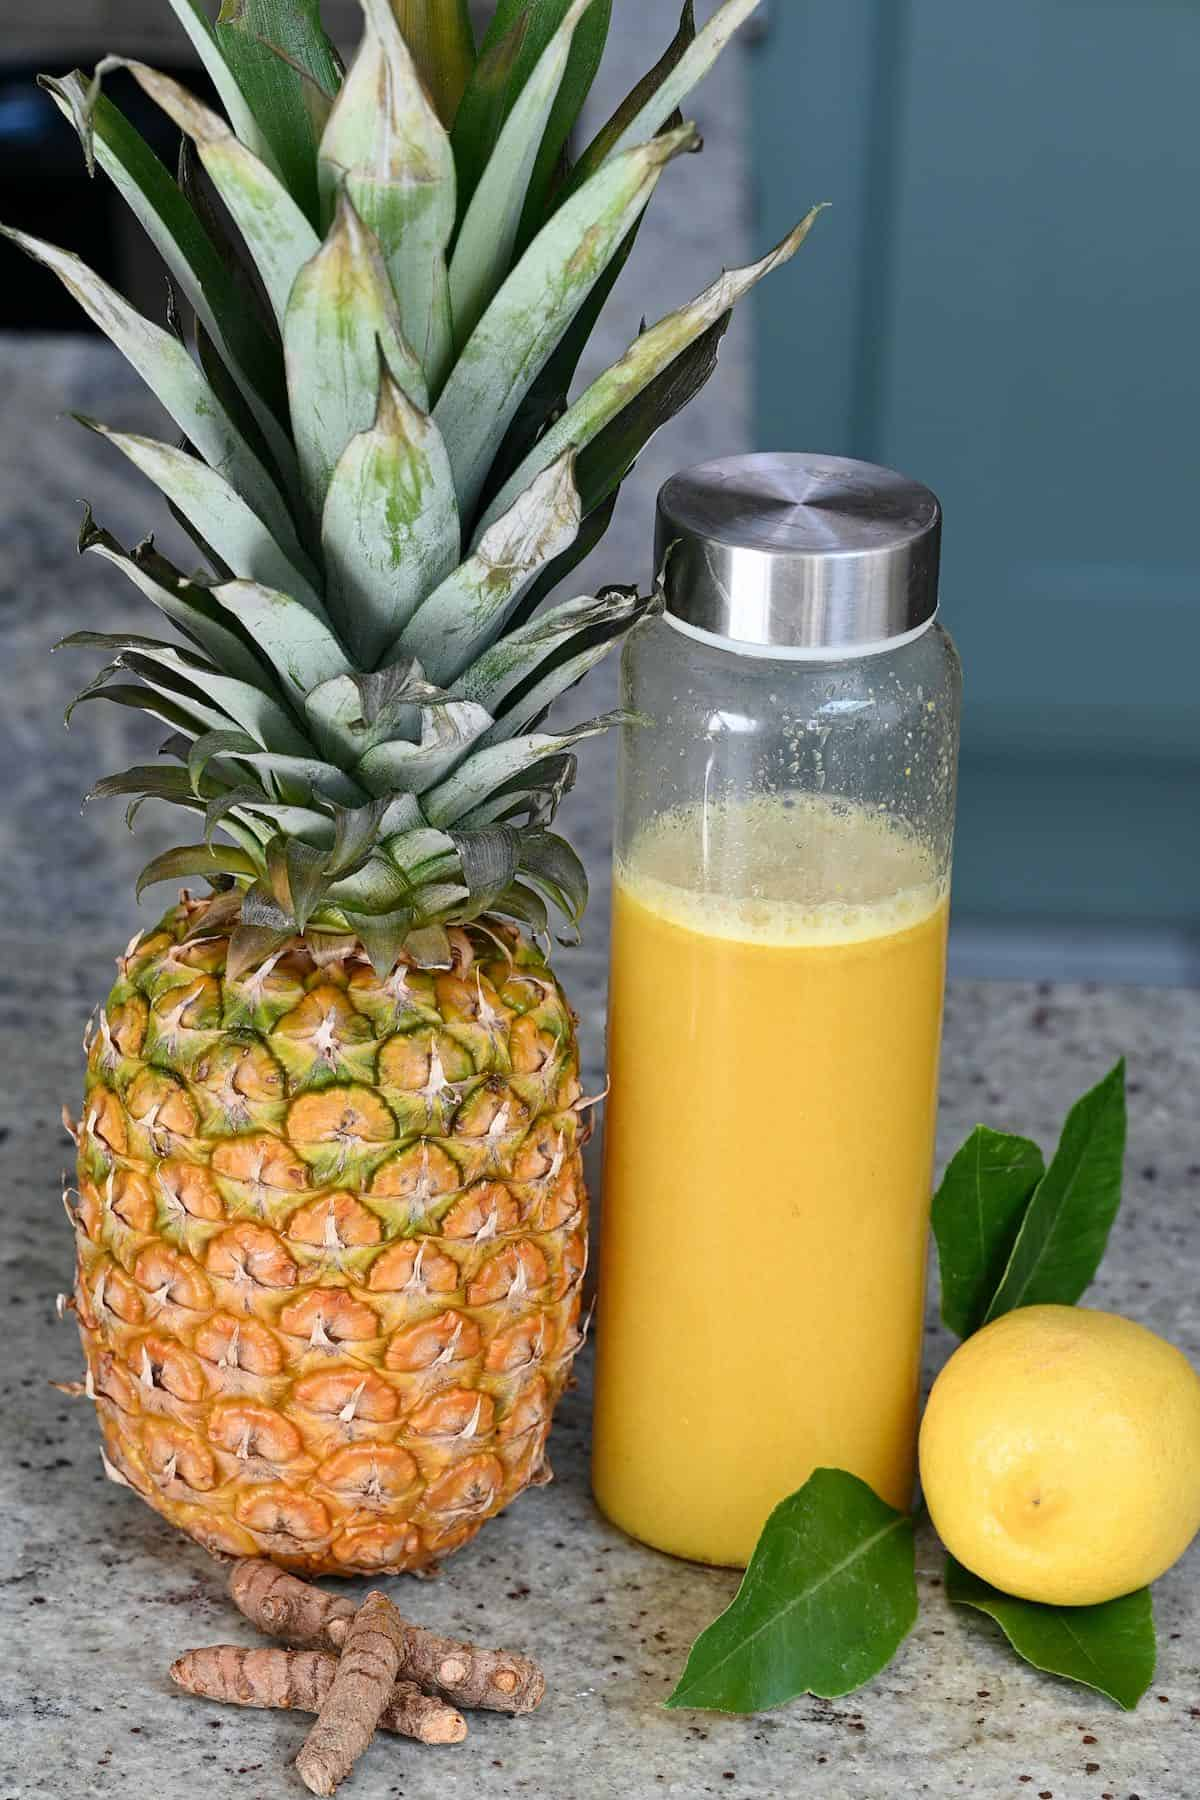 Pineapple ginger and tumeric and juice